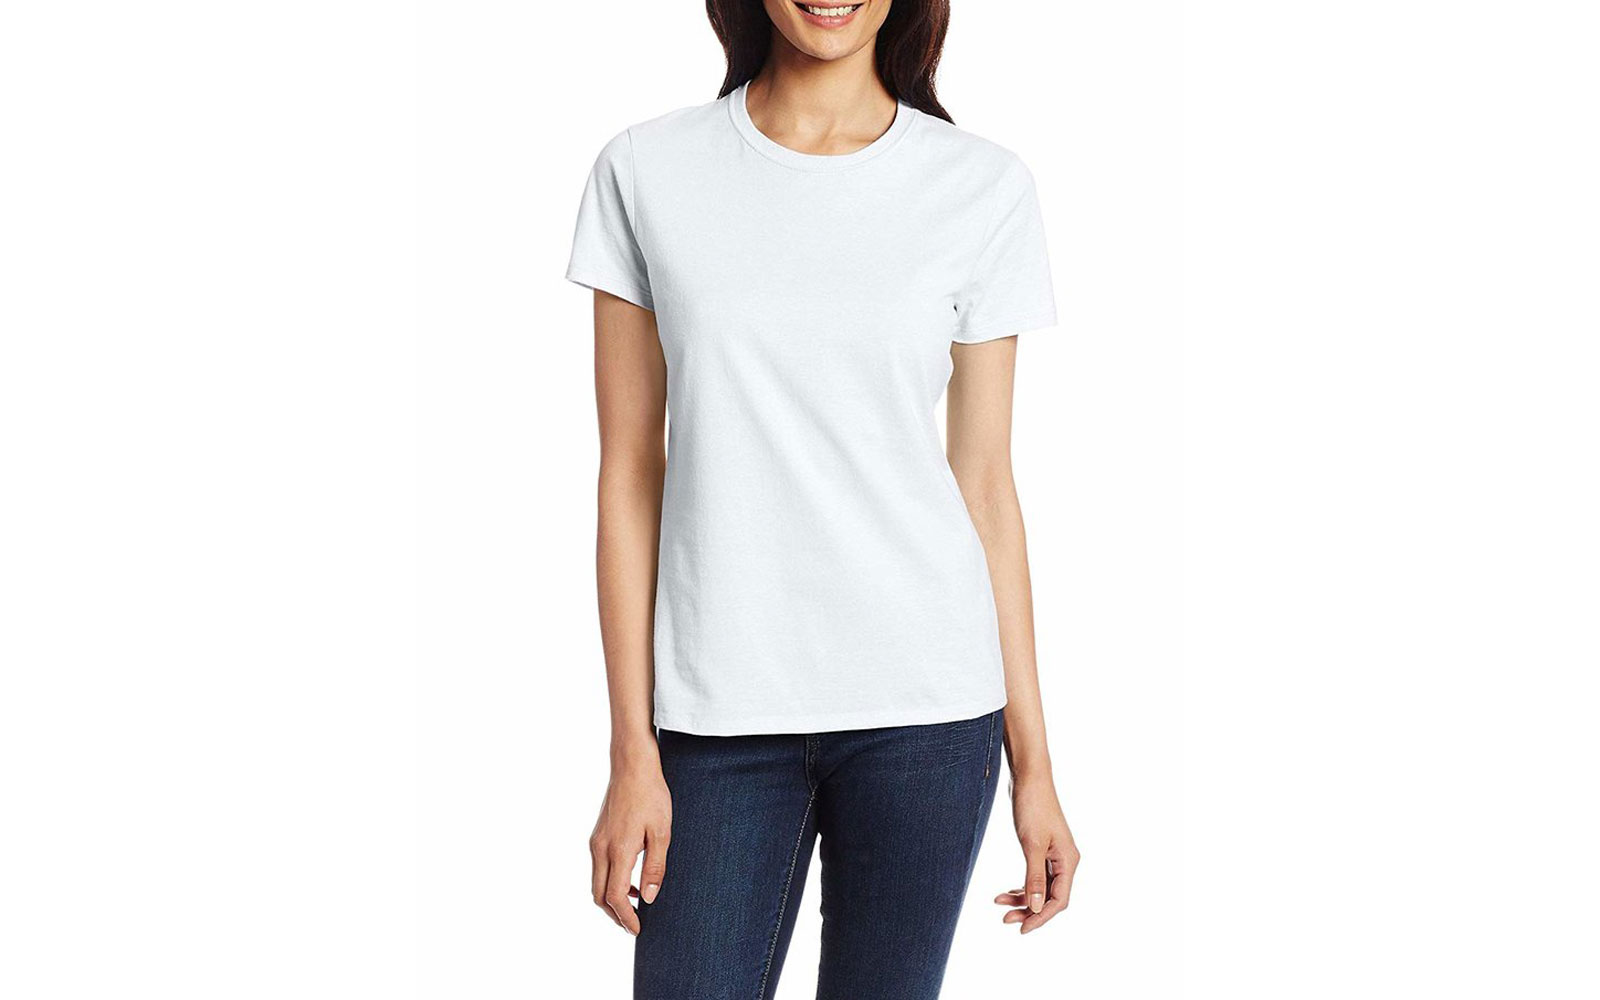 The $6 White T-Shirt With Nearly 2,000 Five-Star Reviews on Amazon Is Also Celebrity-Approved